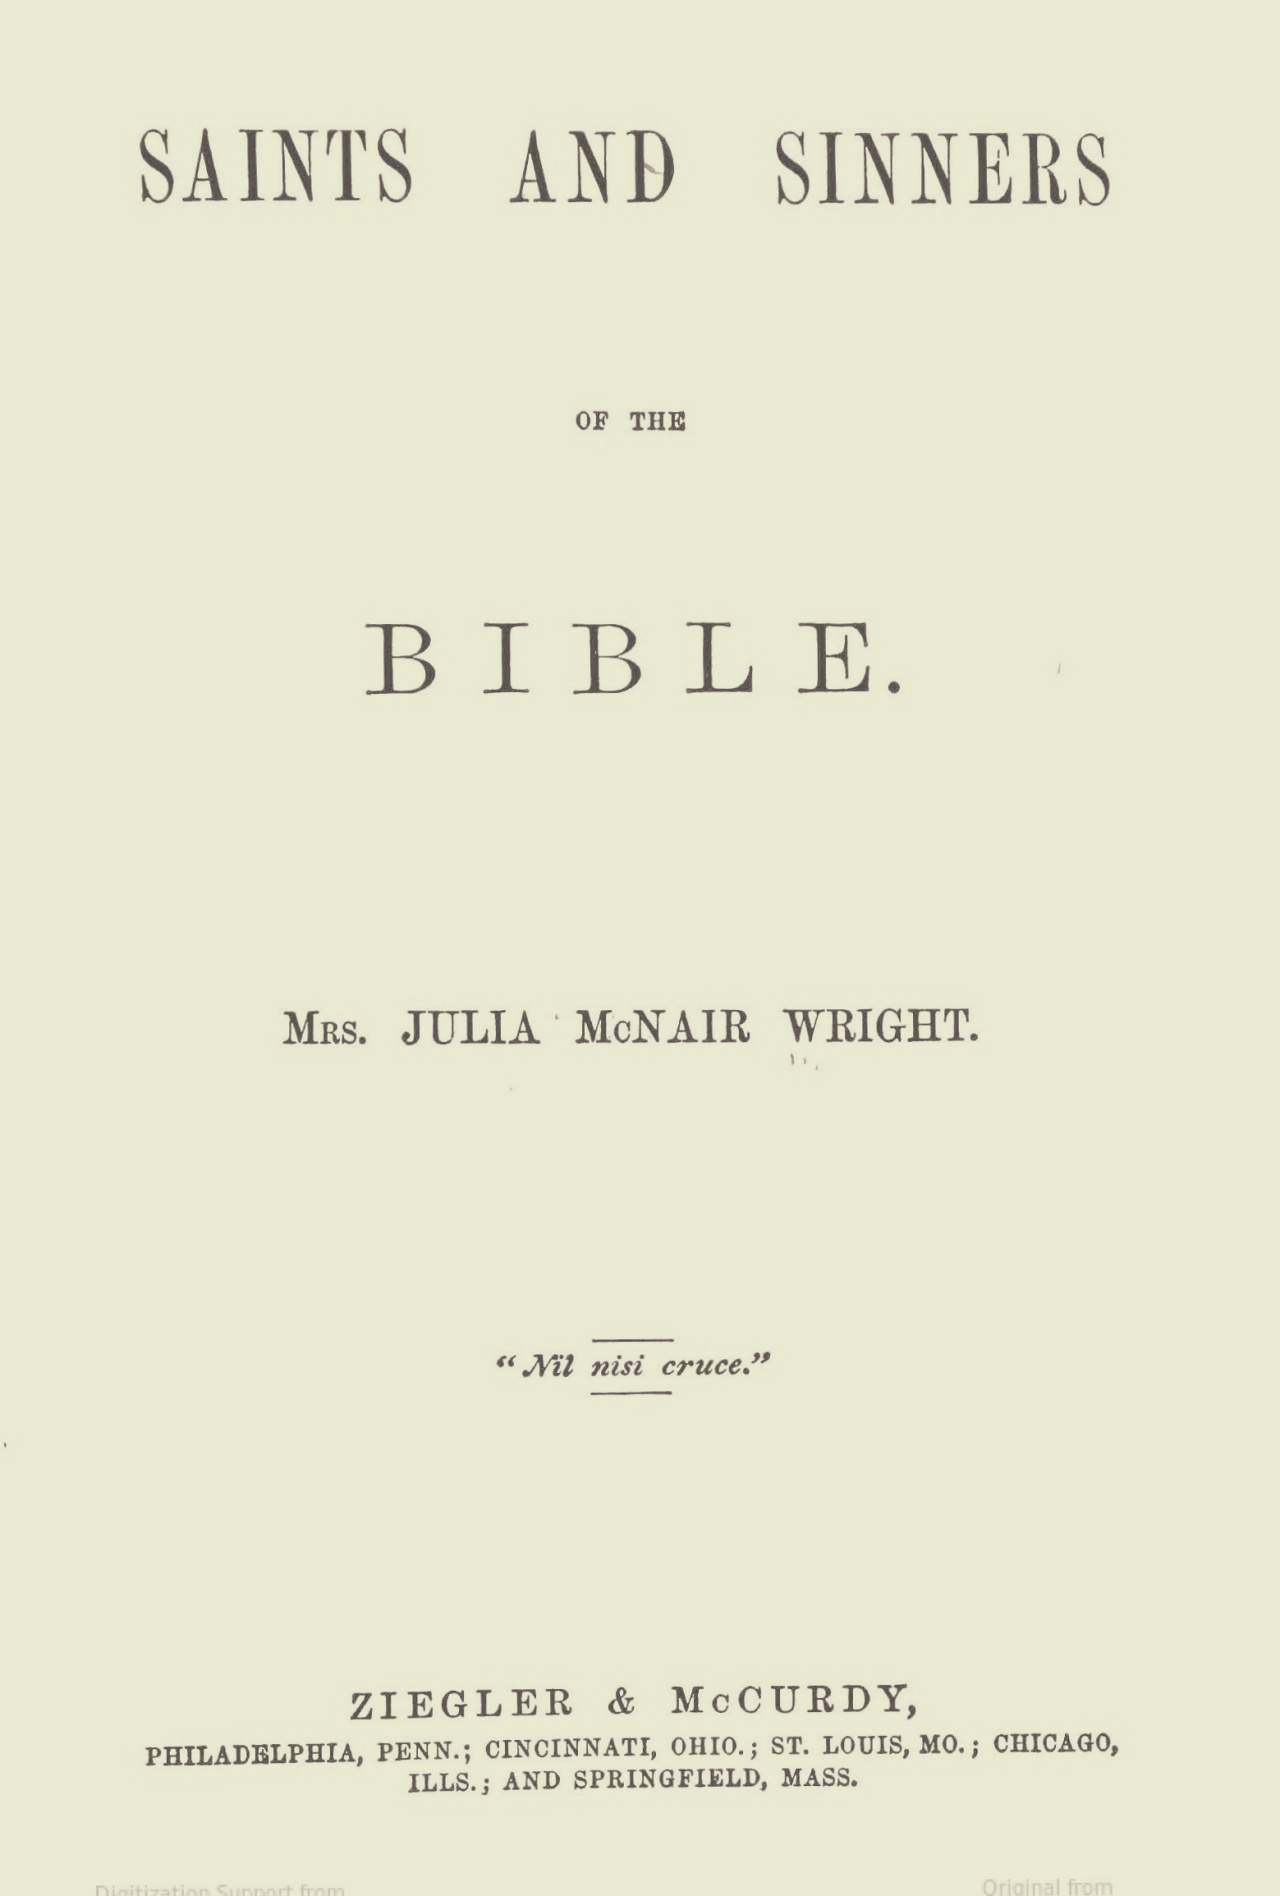 Wright, Julia McNair, Saints and Sinners of the Bible Title Page.jpg